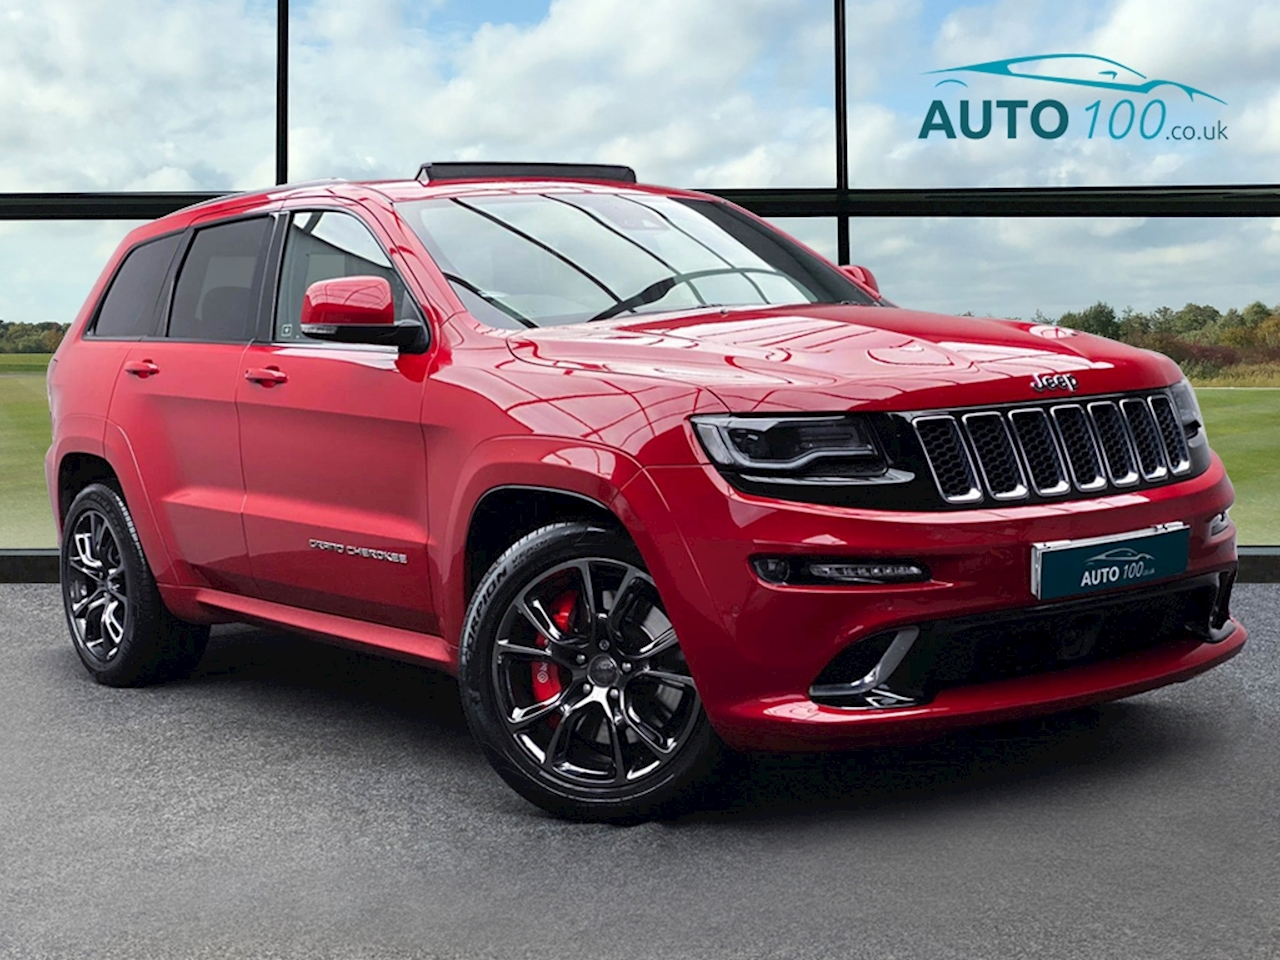 Jeep Grand Cherokee Grand Cherokee Srt 6.4 V8 468hp 4x4 Auto8 Estate 6.4 Automatic Petrol